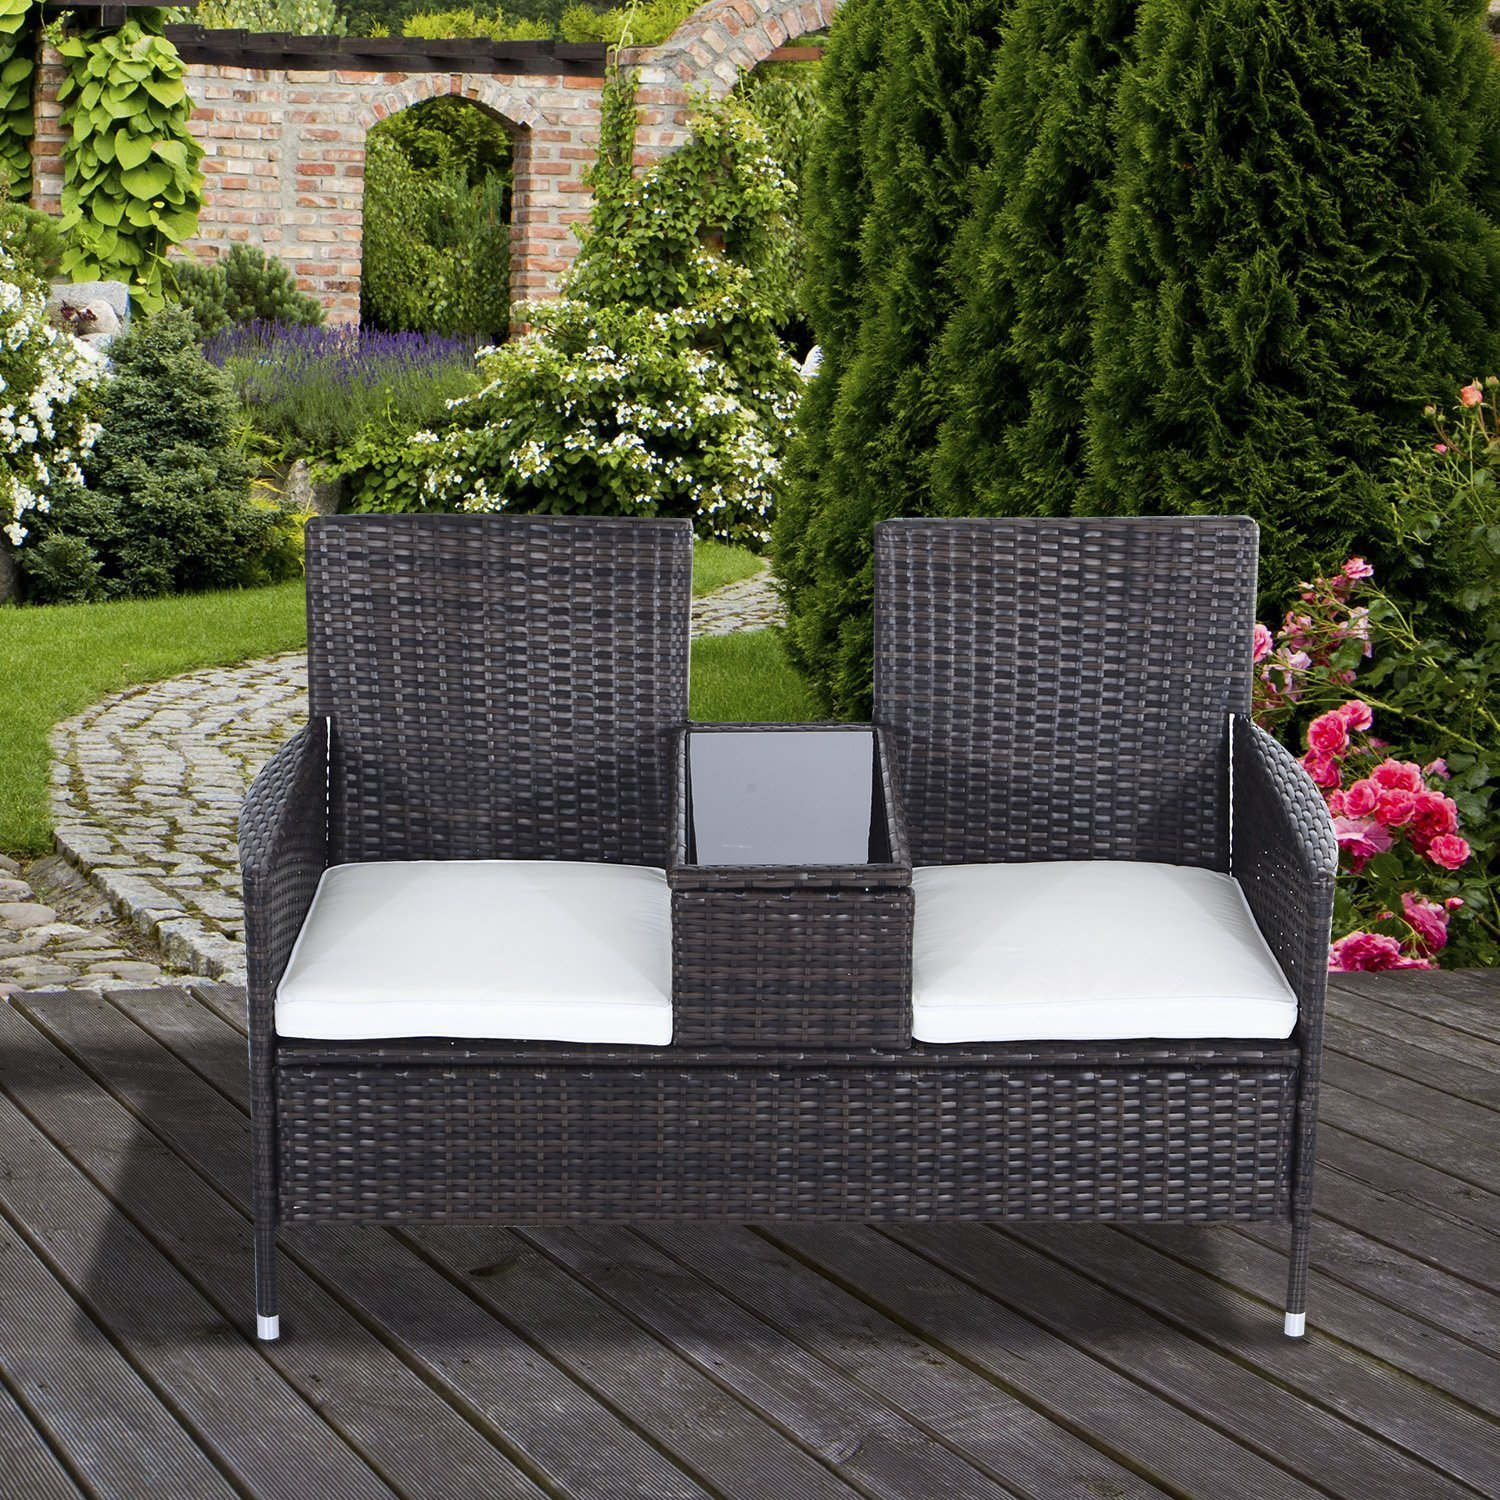 Outsunny 2 Seater Rattan Chair Garden Furniture Patio Love